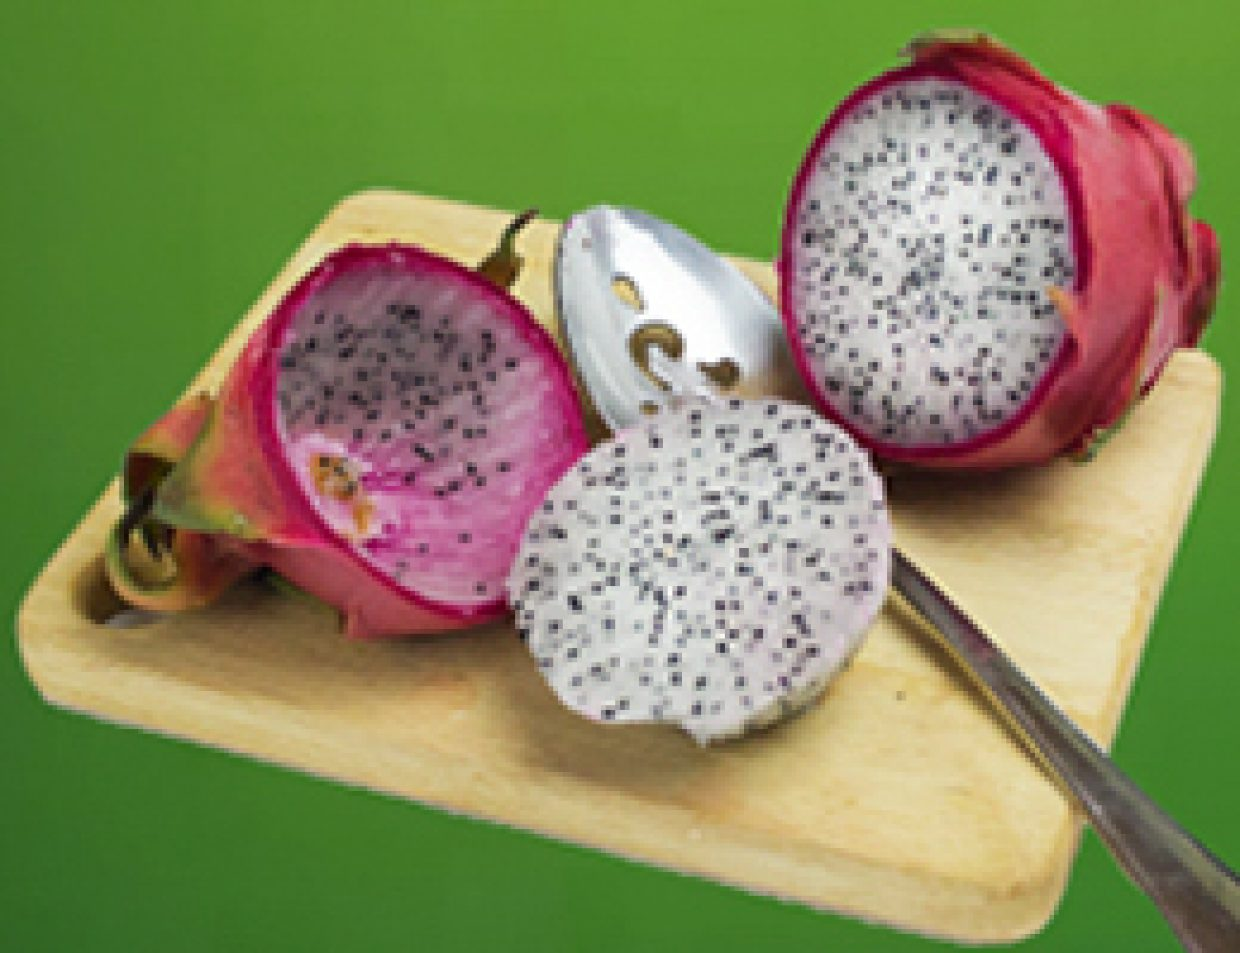 How to open dragonfruit, it's easy